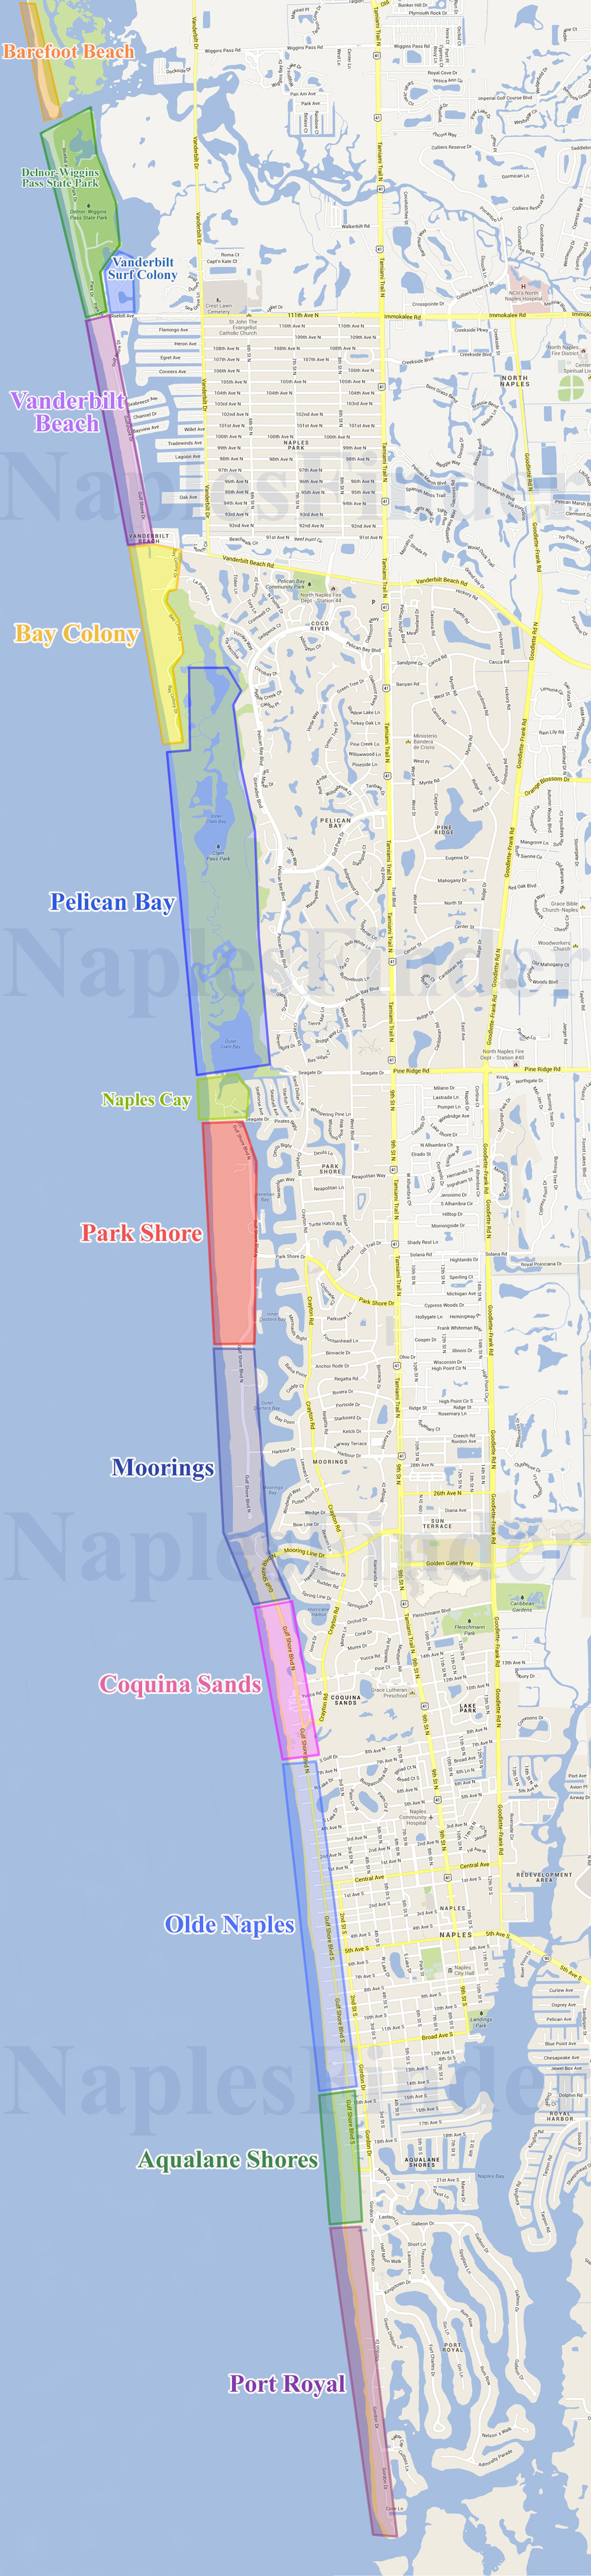 Beachfront Properties In Naples FL  Naples Real Estate On